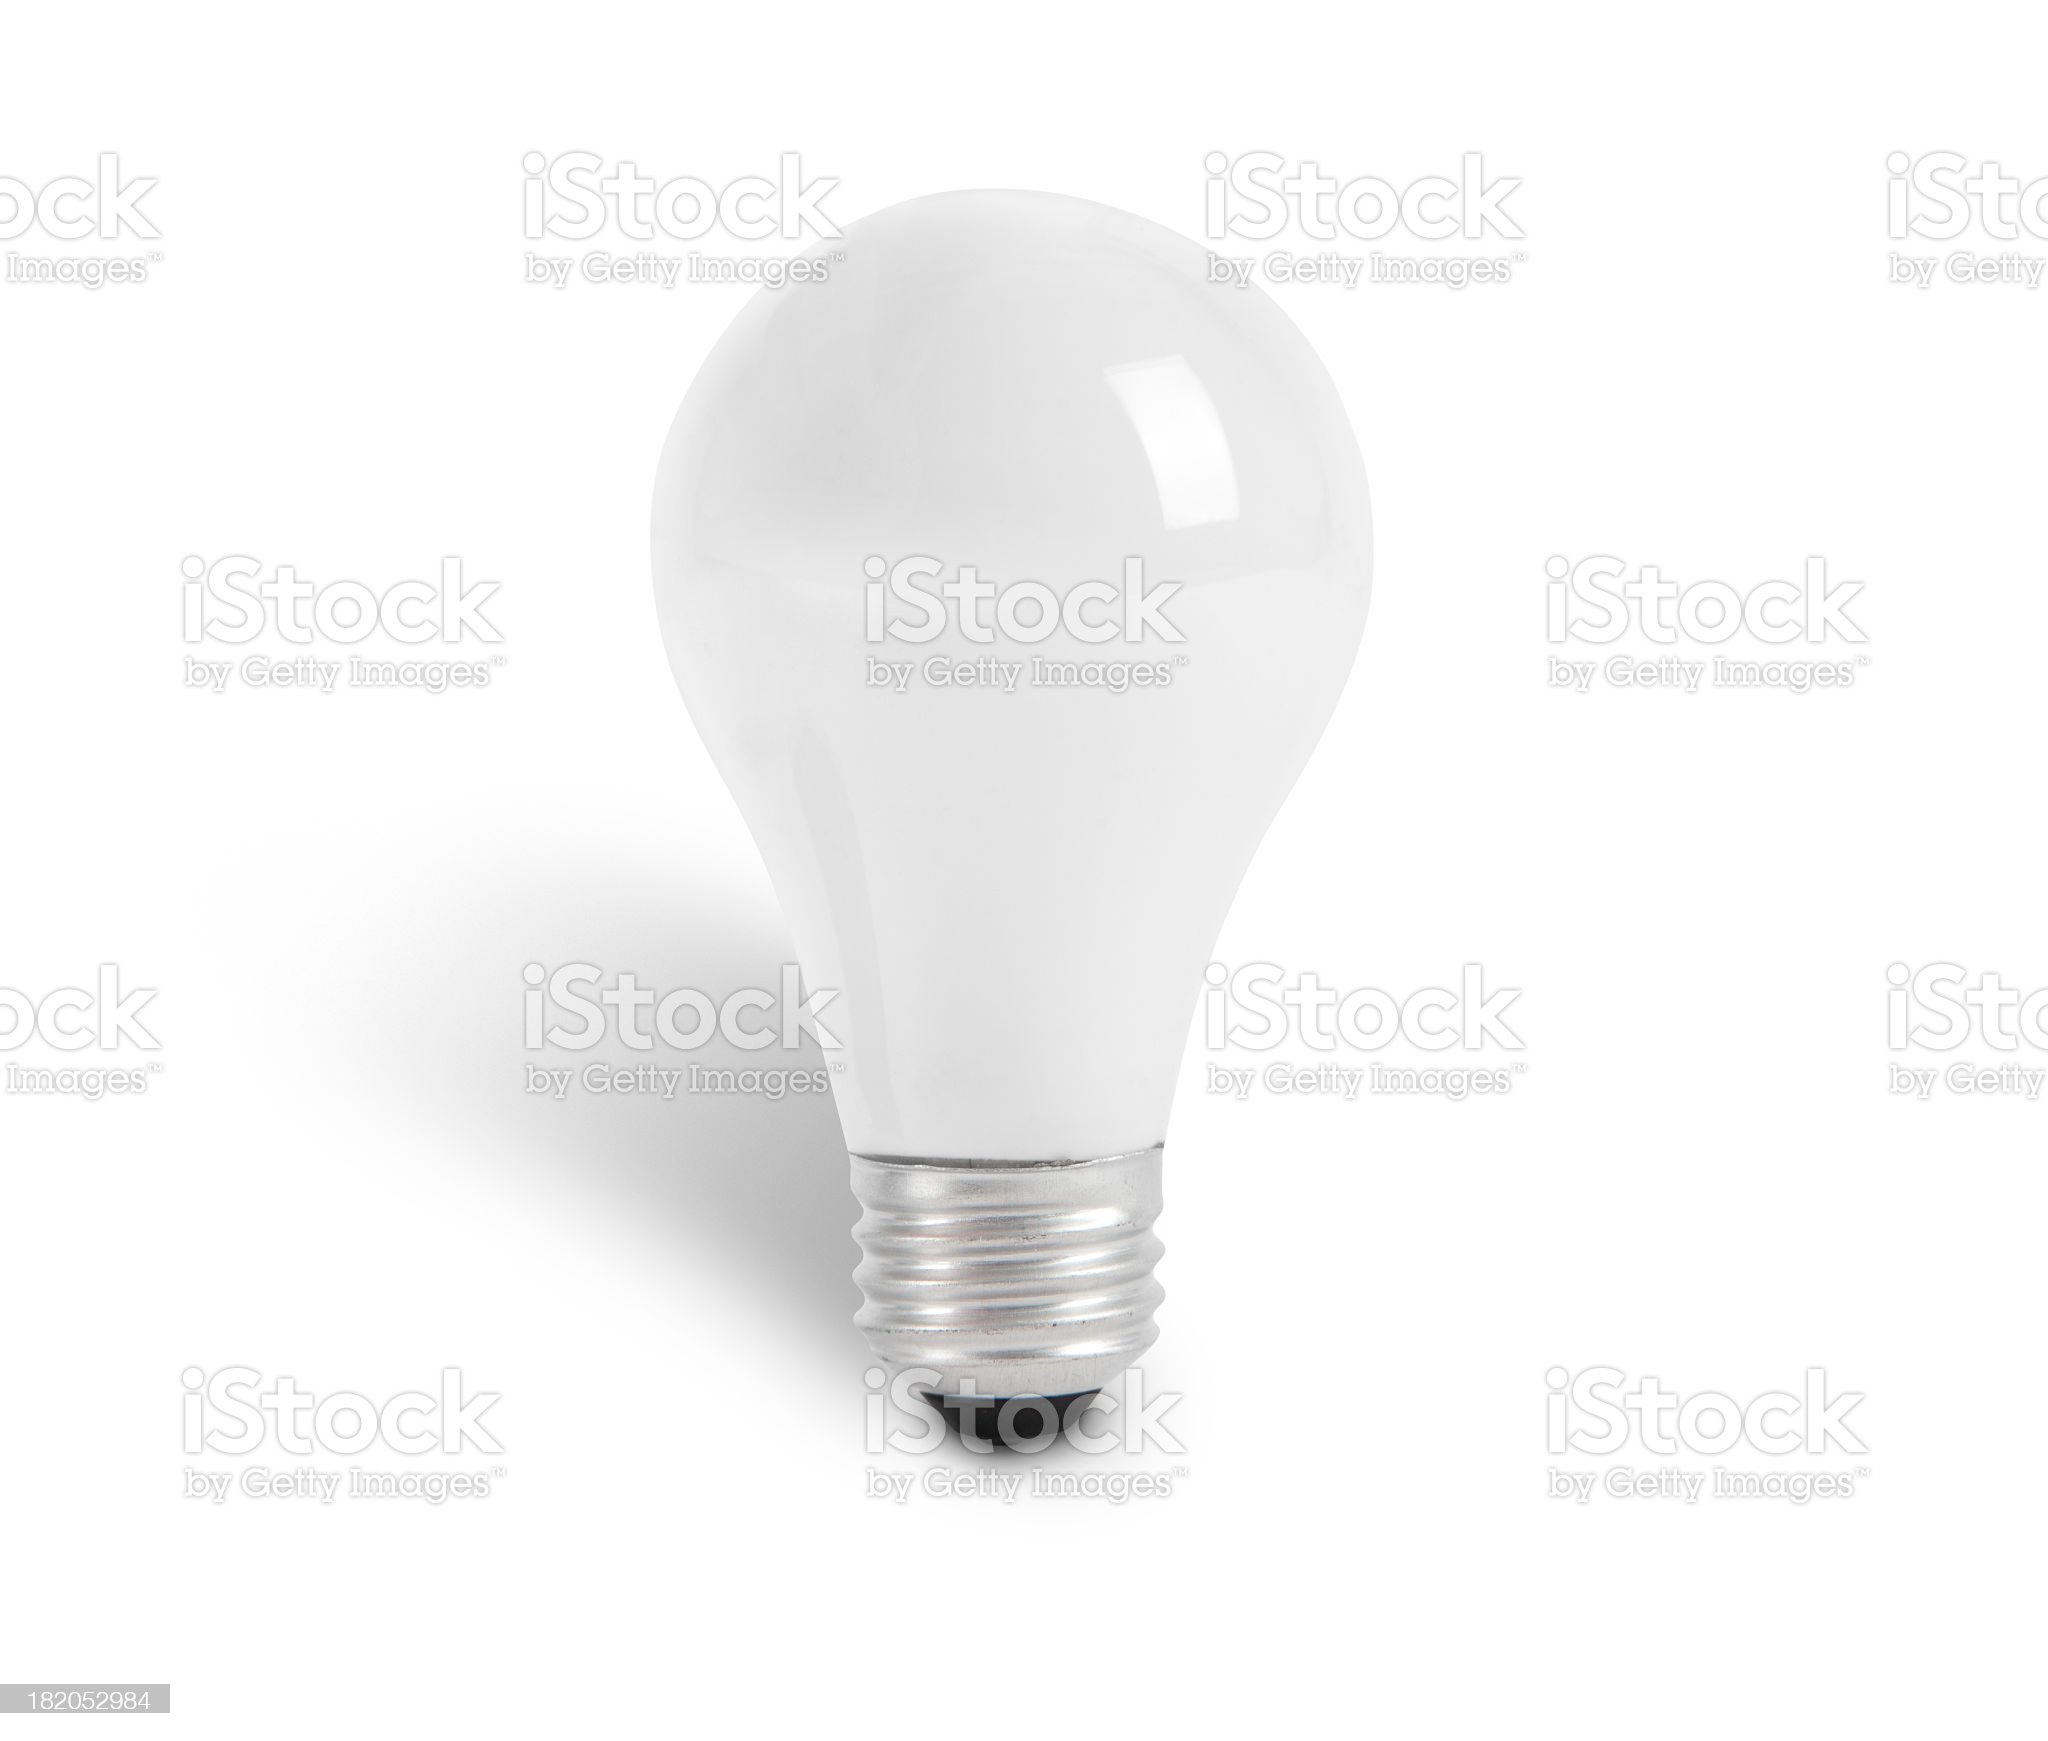 Light Bulb with outline paths royalty-free stock photo